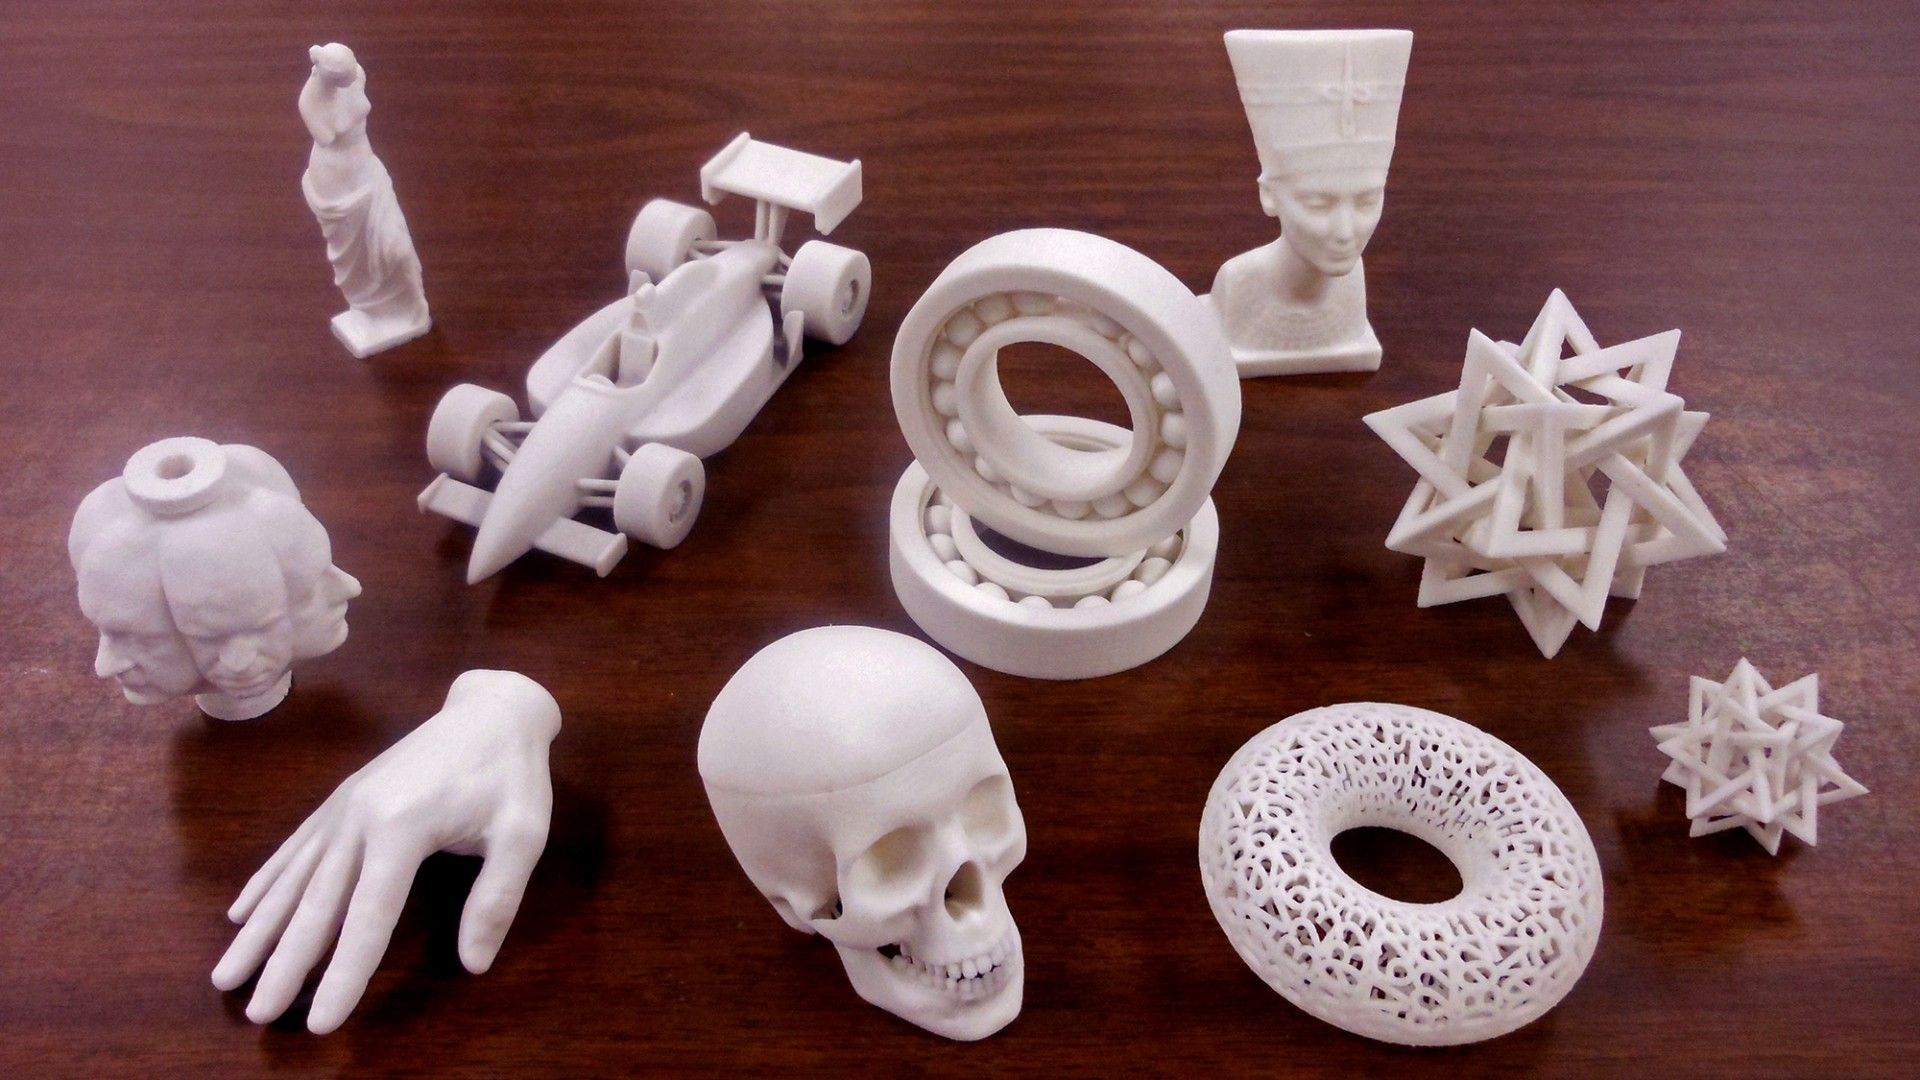 25 best sites to download free stl files to 3d print all3dp - Free Images For Printing